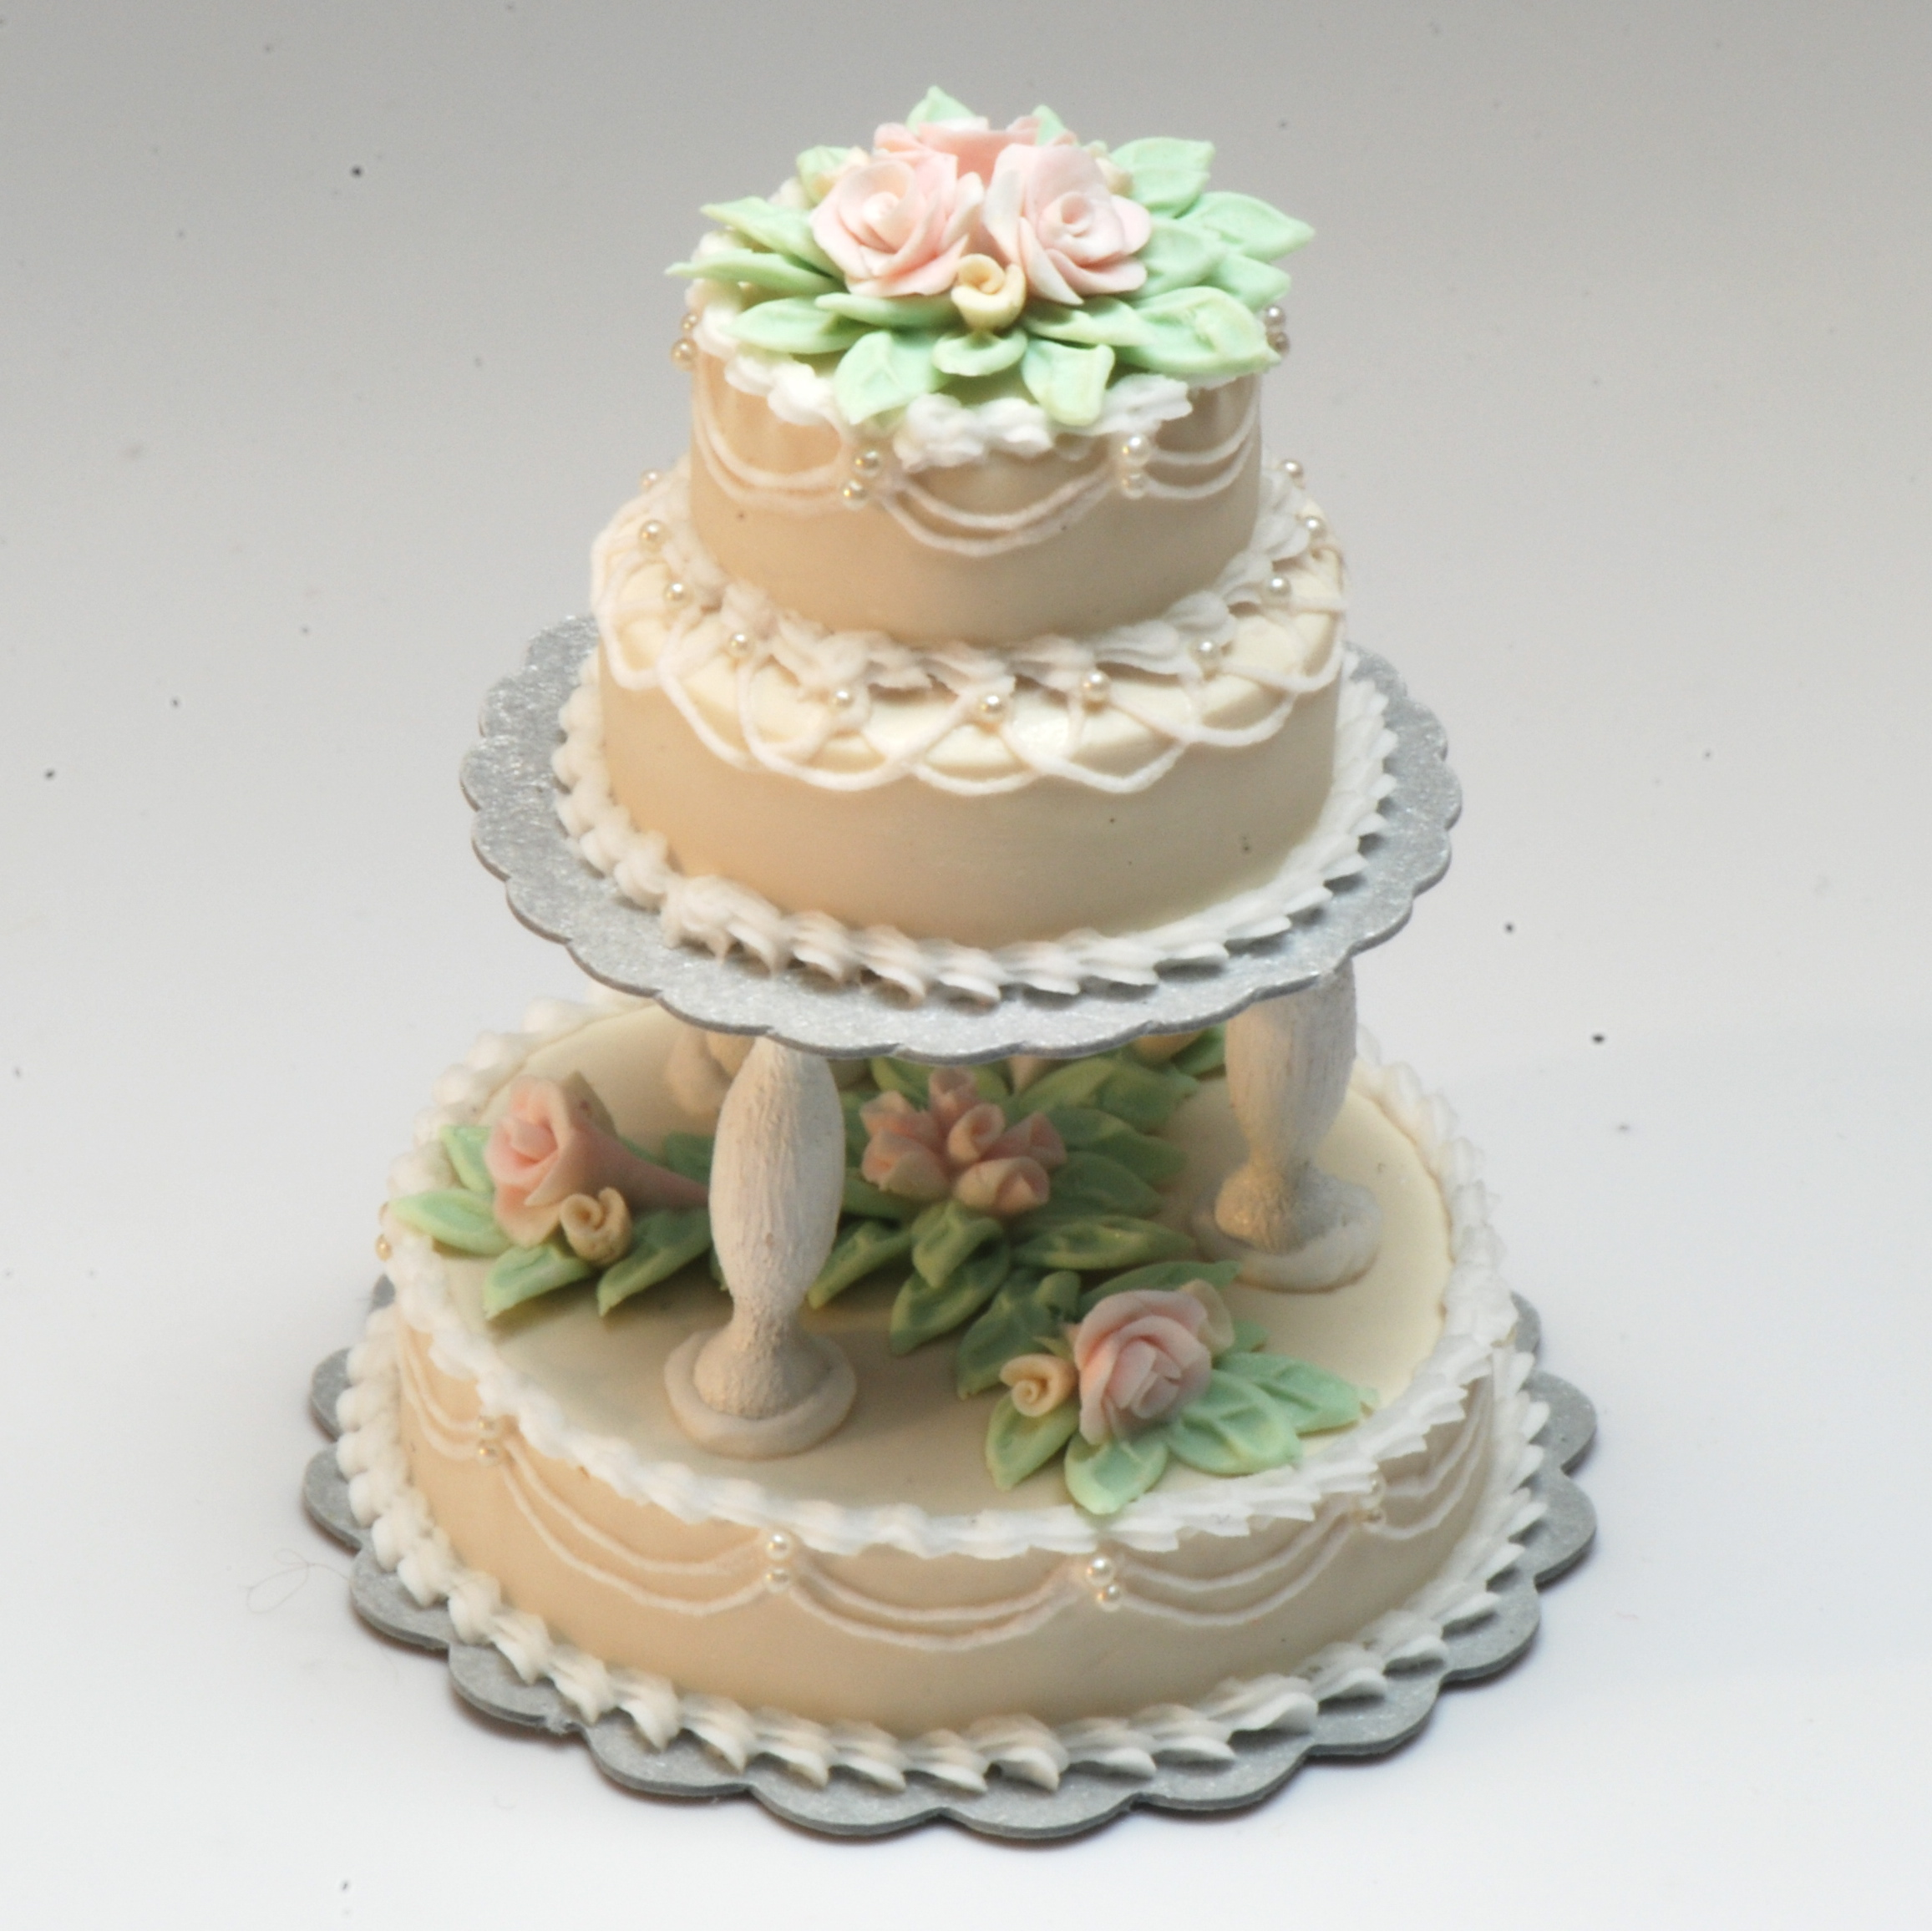 Ecru 3 Tier Wedding Cake Wpink Roses Stewart Dollhouse Creations - 3 Tier Wedding Cakes